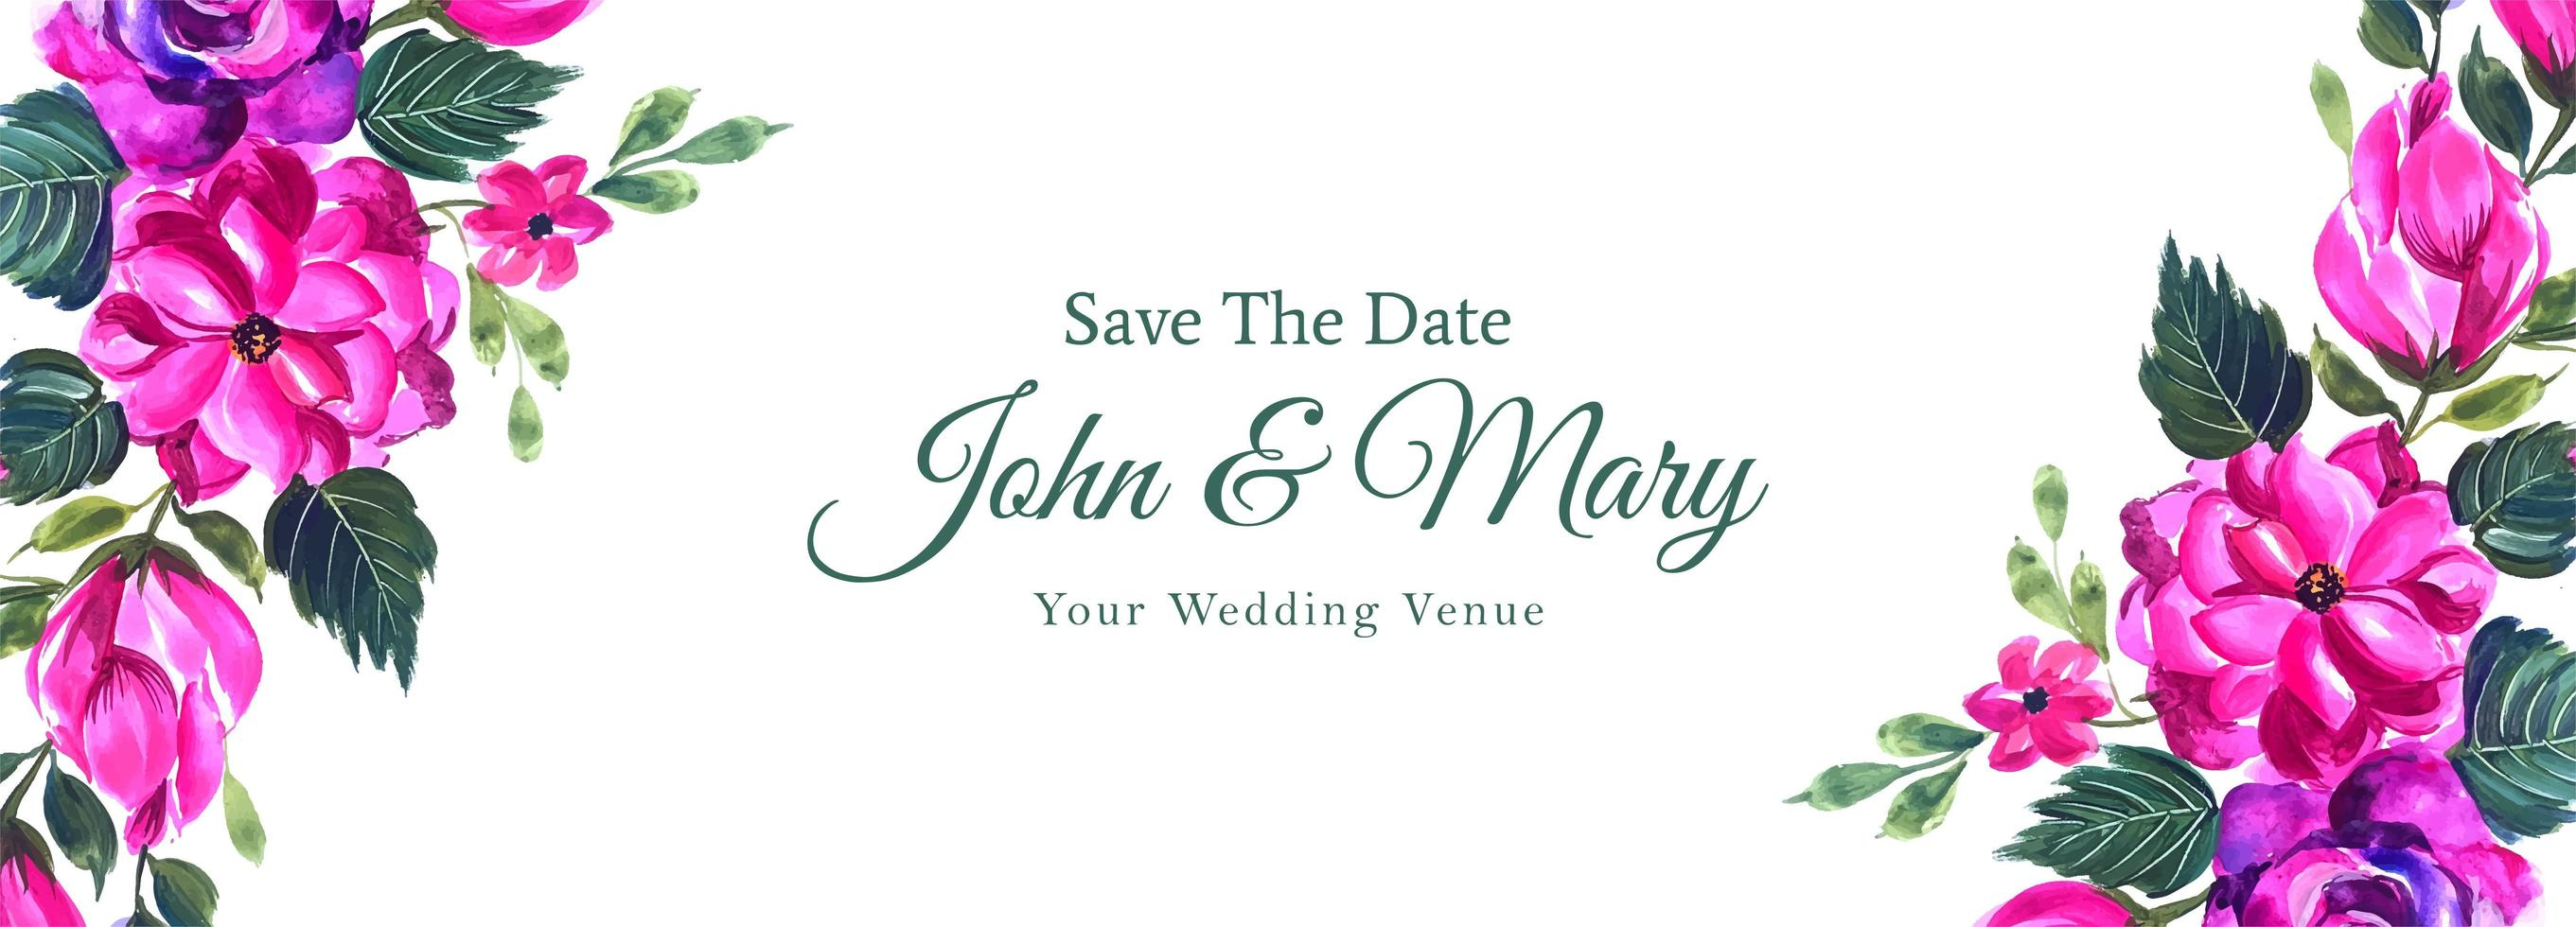 Decorative Pink Save the Date Wedding Banner  vector